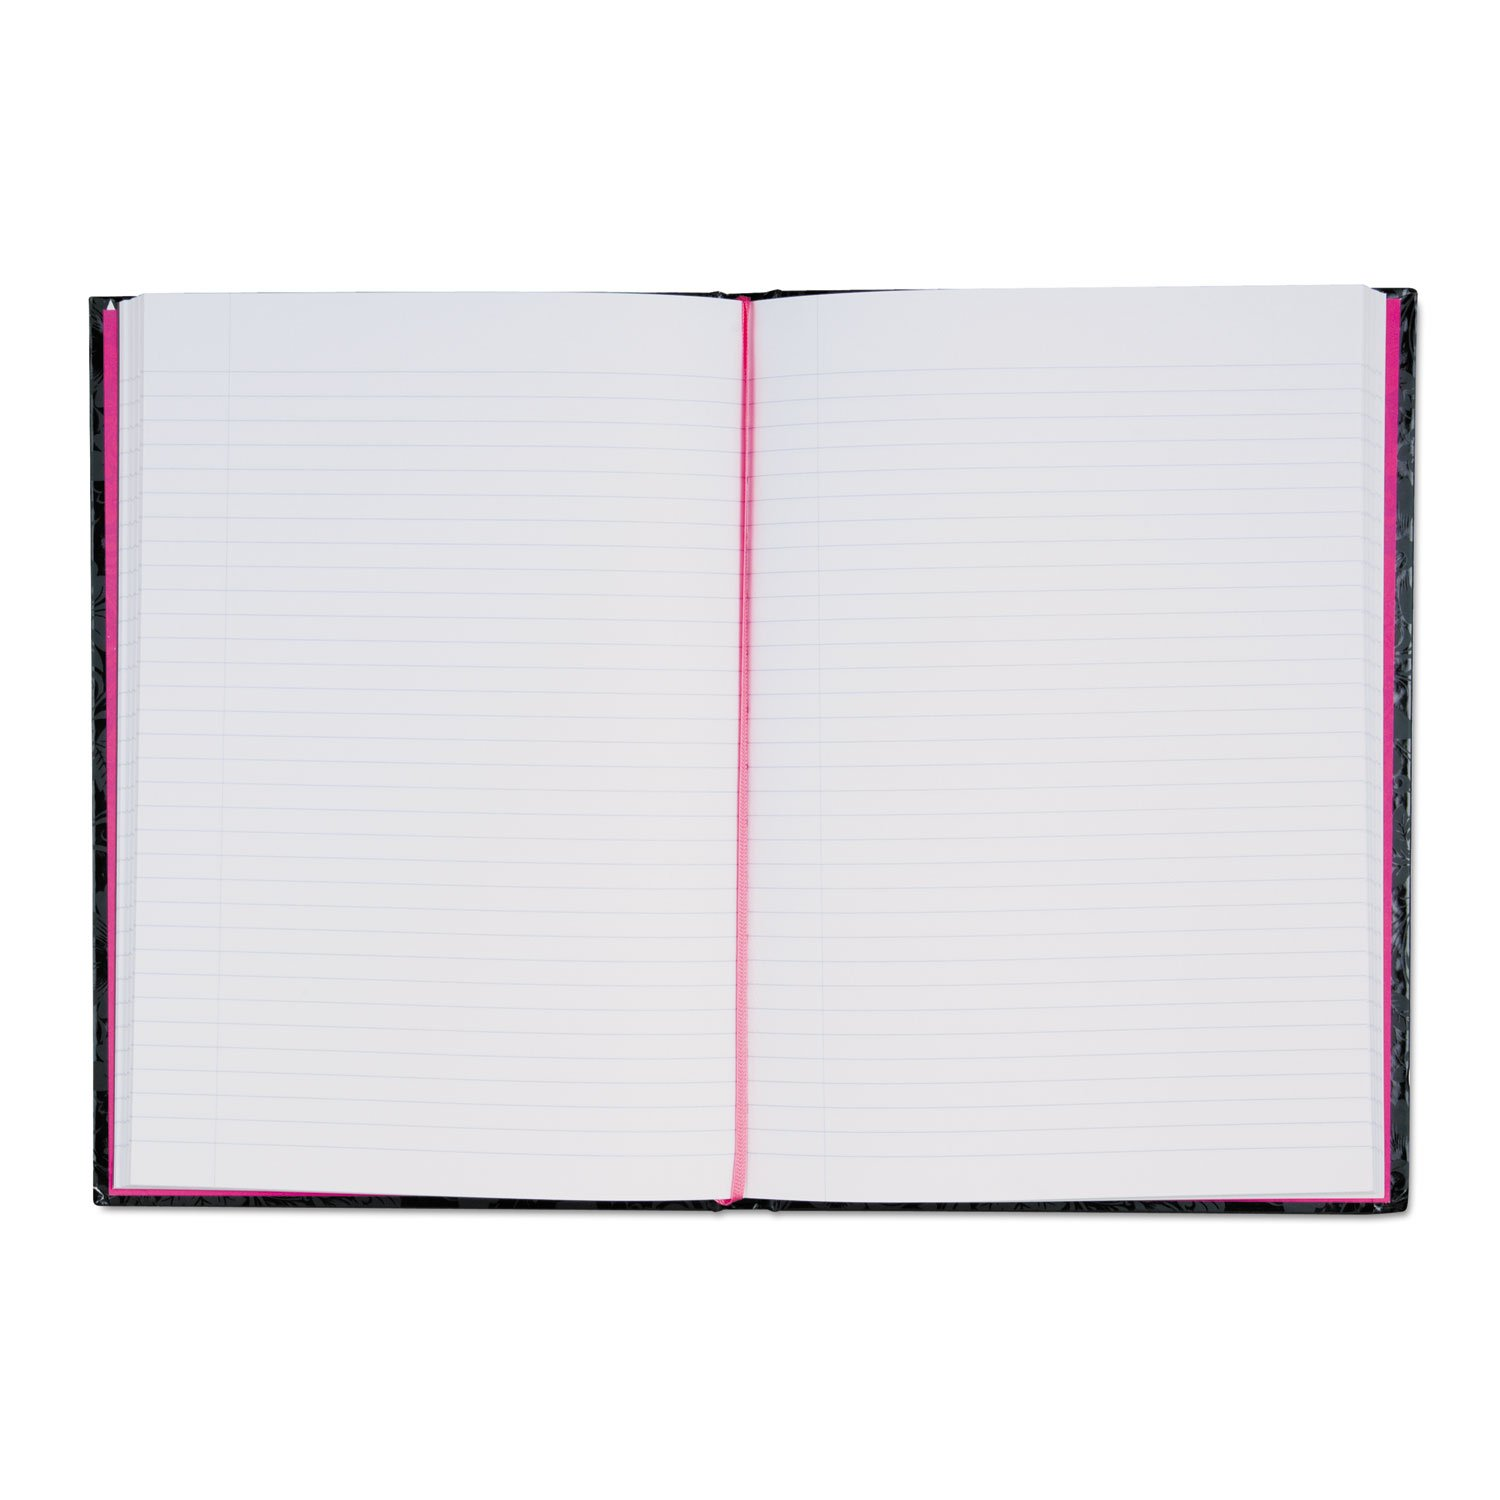 Pink n Black Notebook - 96 Sheet - 24 lb - Ruled - 8.25quot; x 11.75quot; - 1 Each - Black, Pink Paper Black Cover